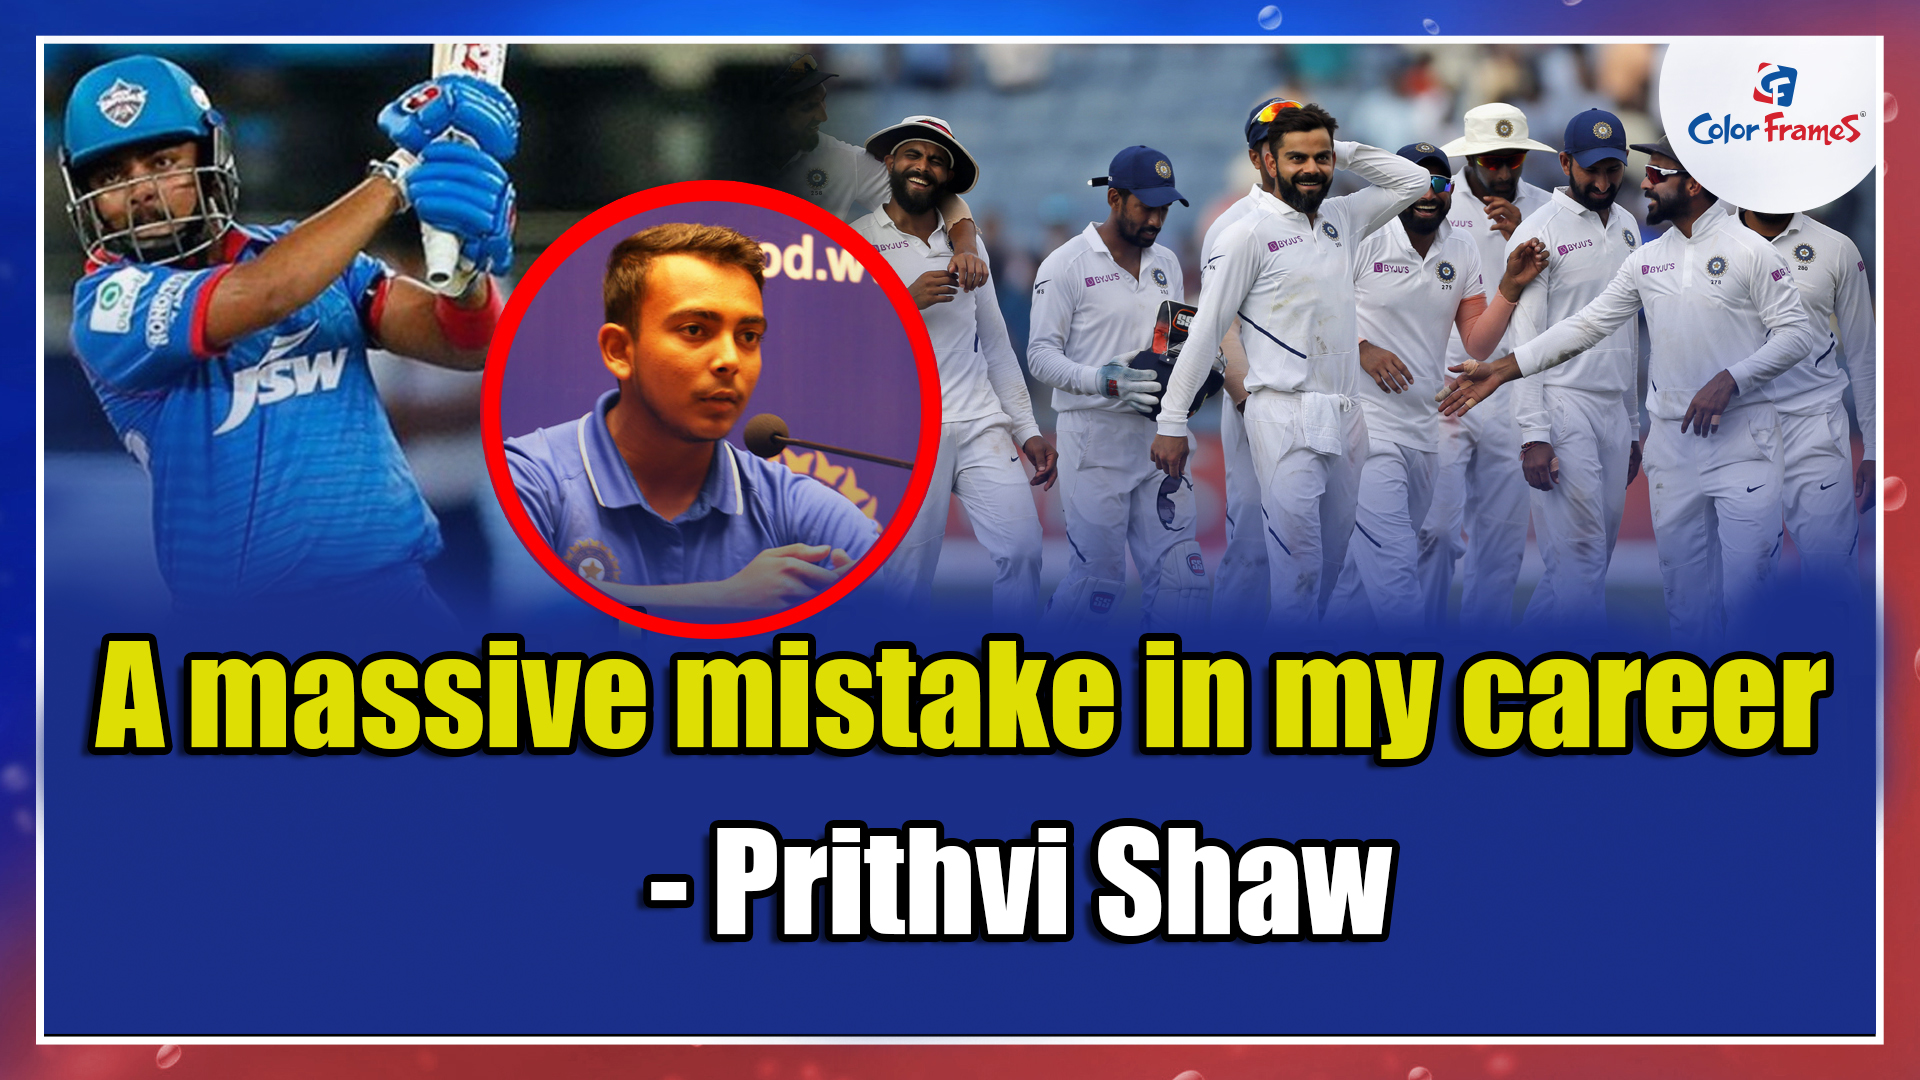 A massive mistake in my career      - Prithvi Shaw